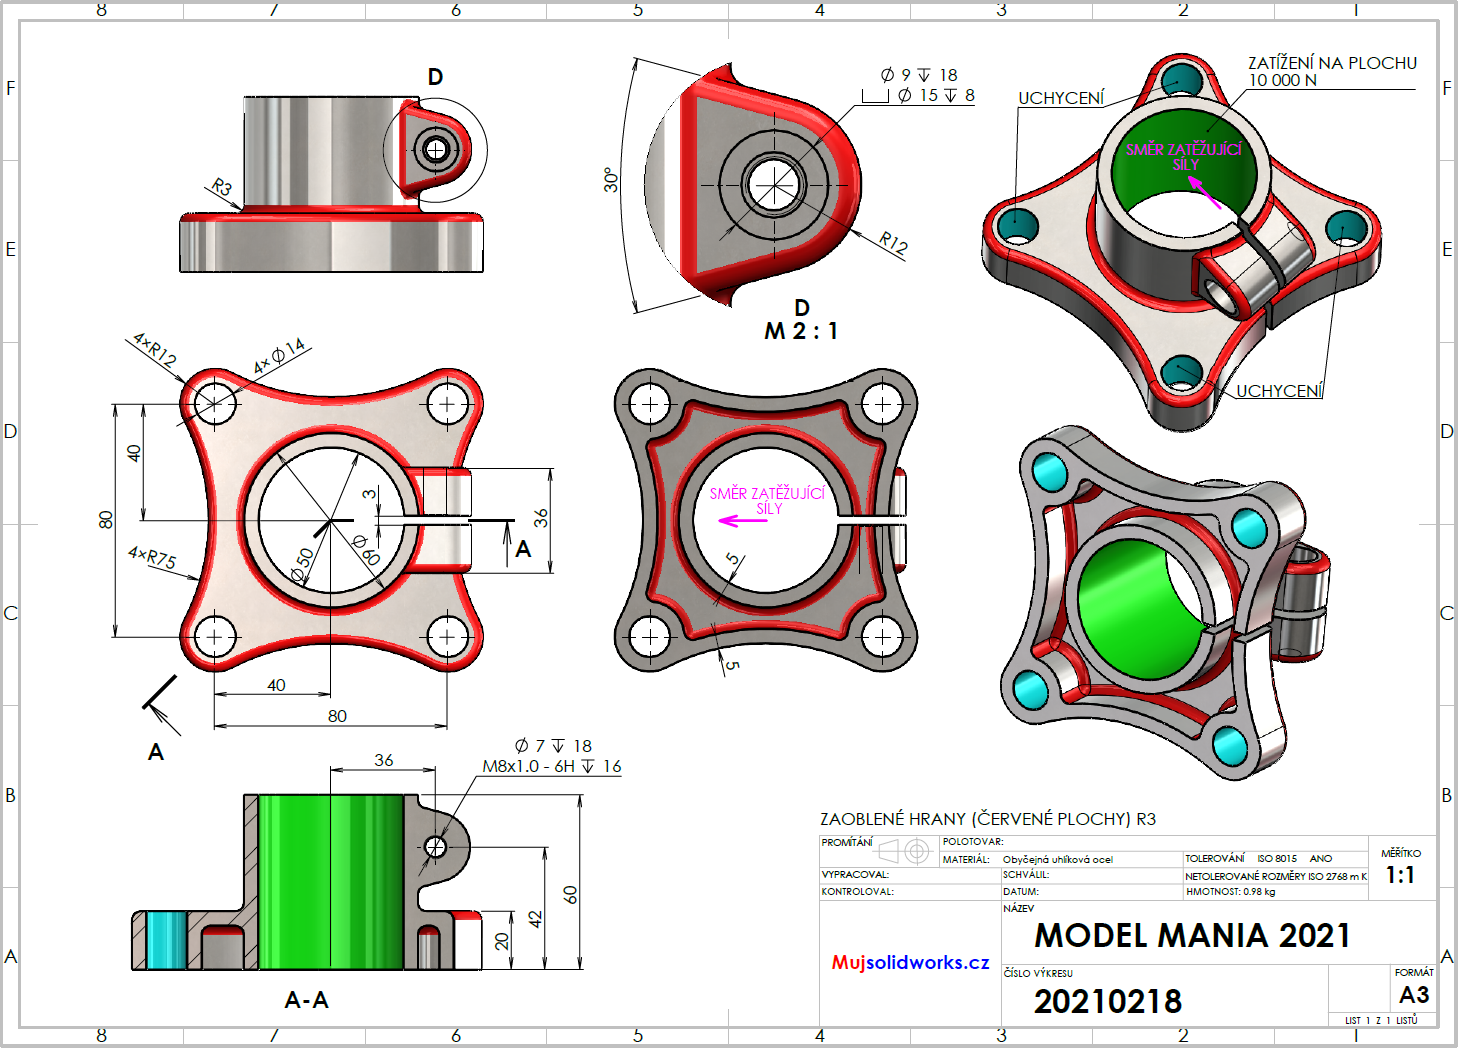 90-SOLIDWORKS-Model-Mania-2021-tutorial-postup-navod